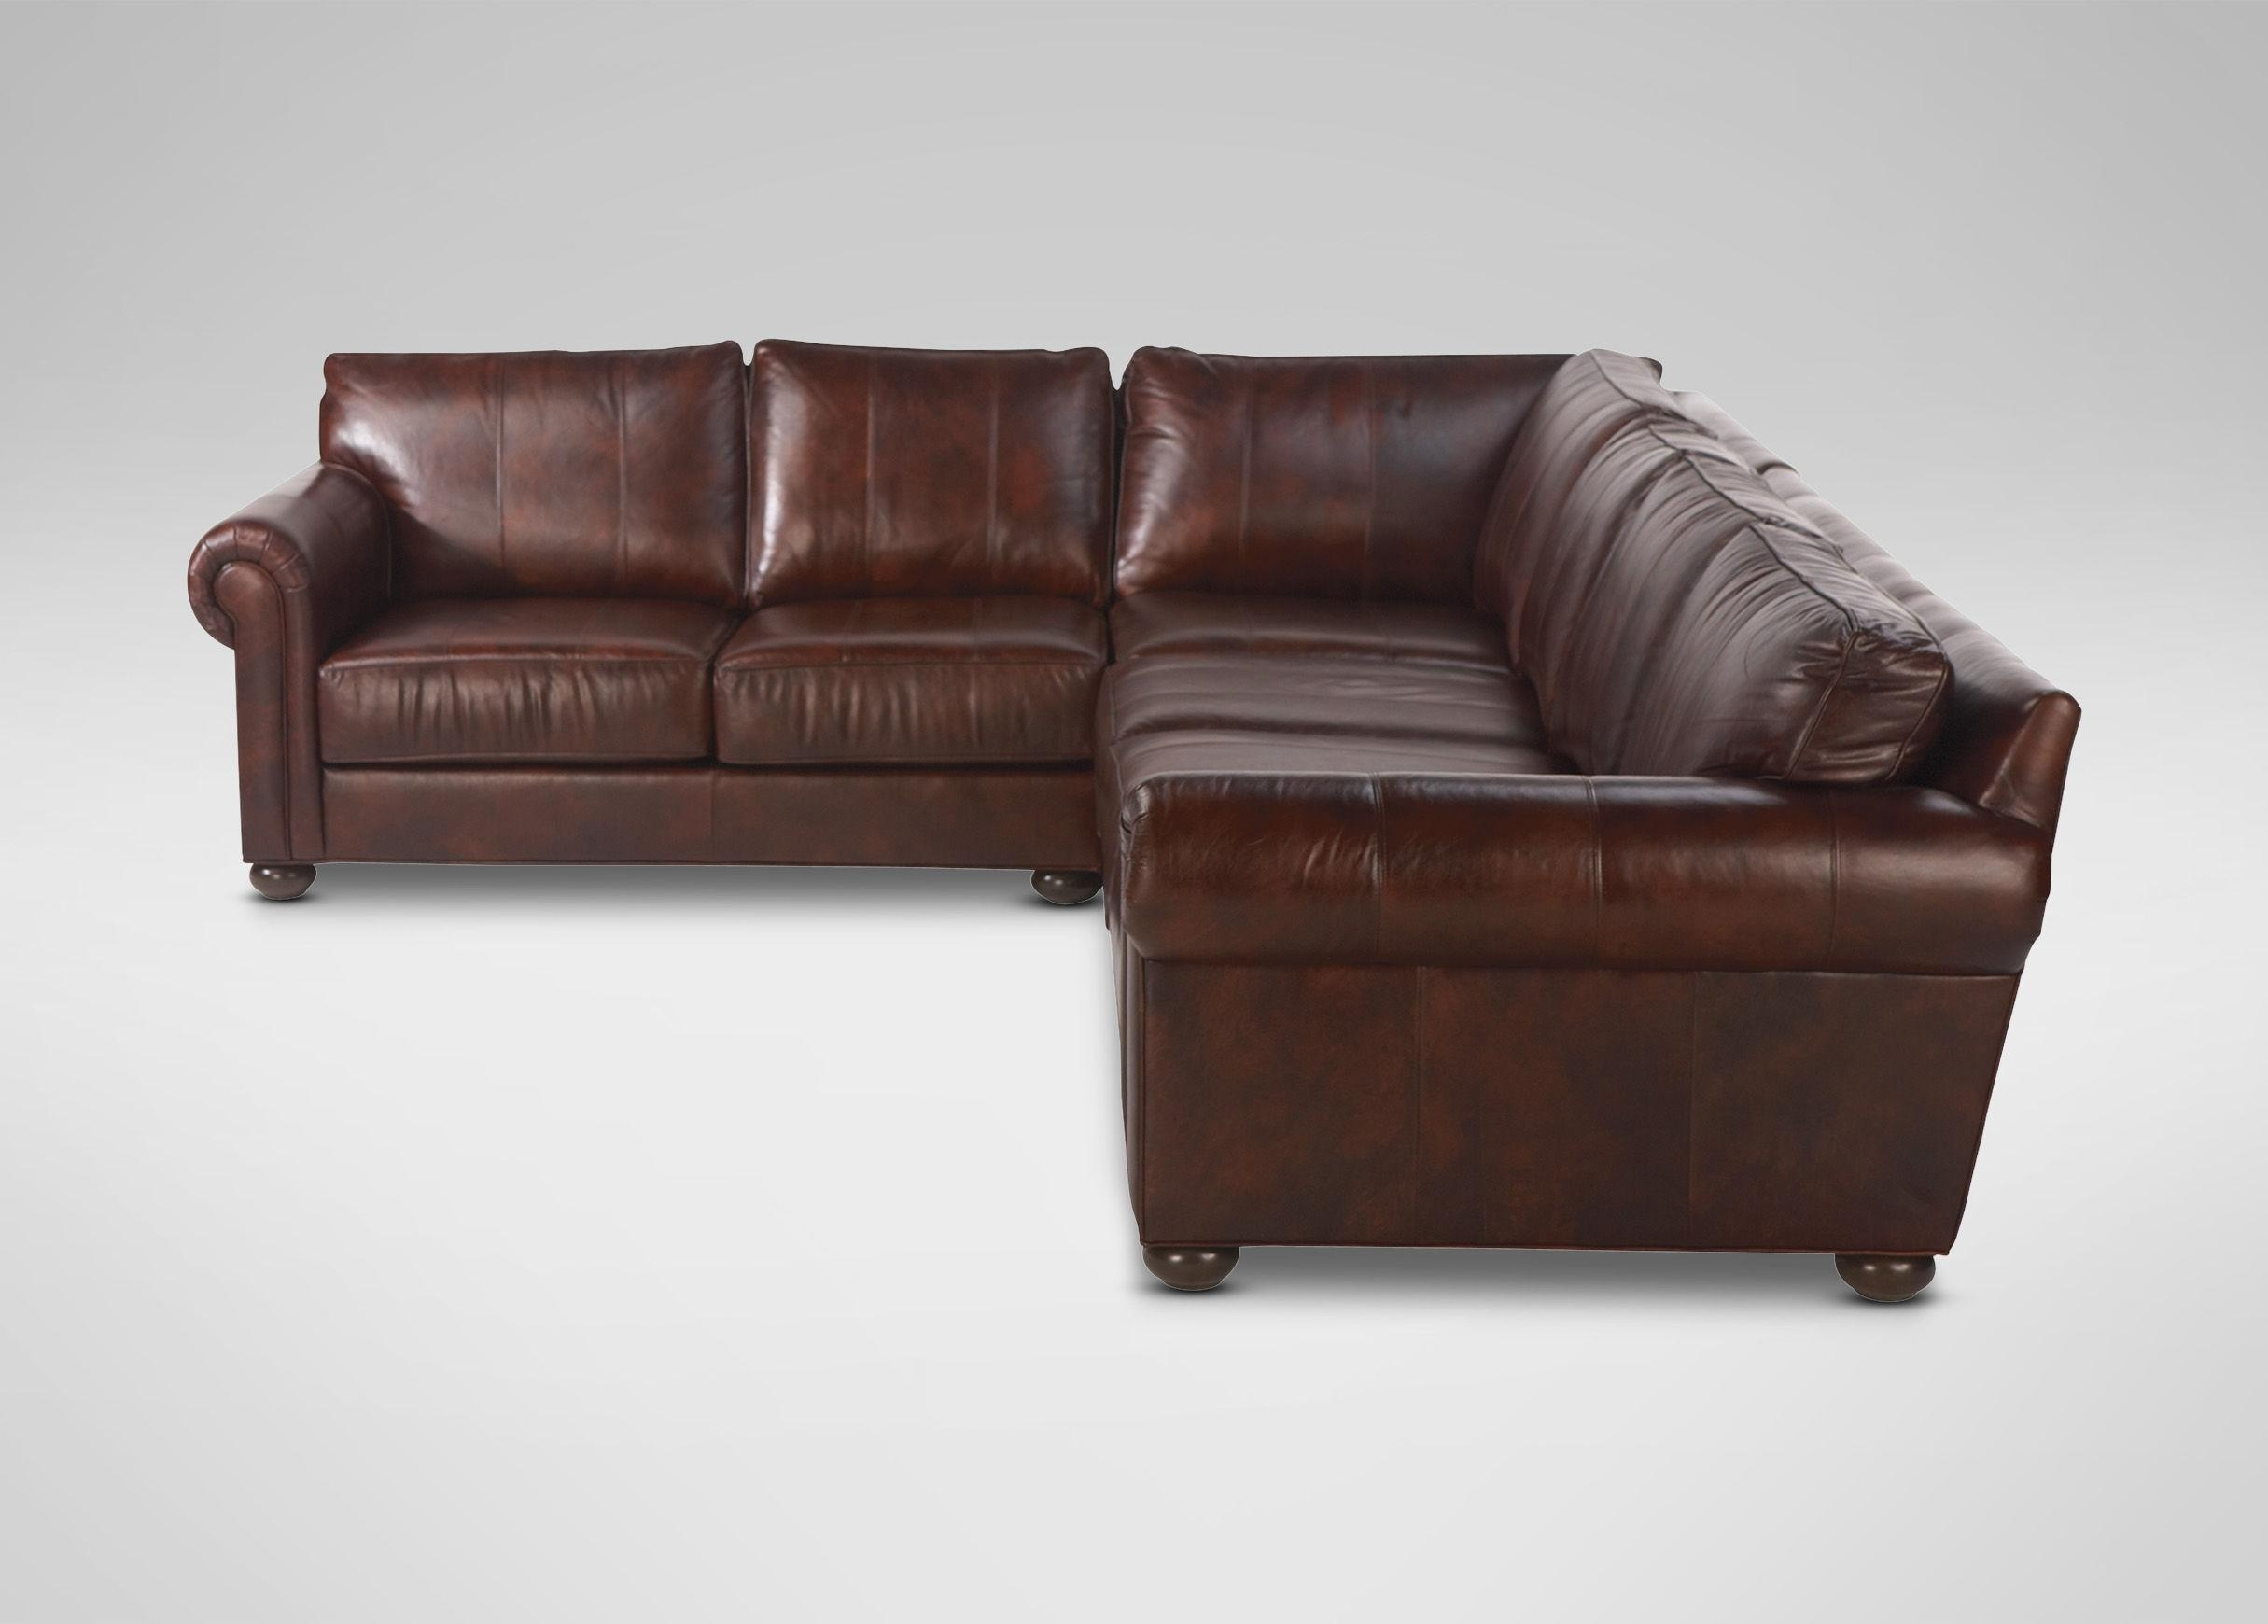 Decorating: Interesting Design Deep Sectional Sofa With Marvelous With Wide Seat Sectional Sofas (View 20 of 20)